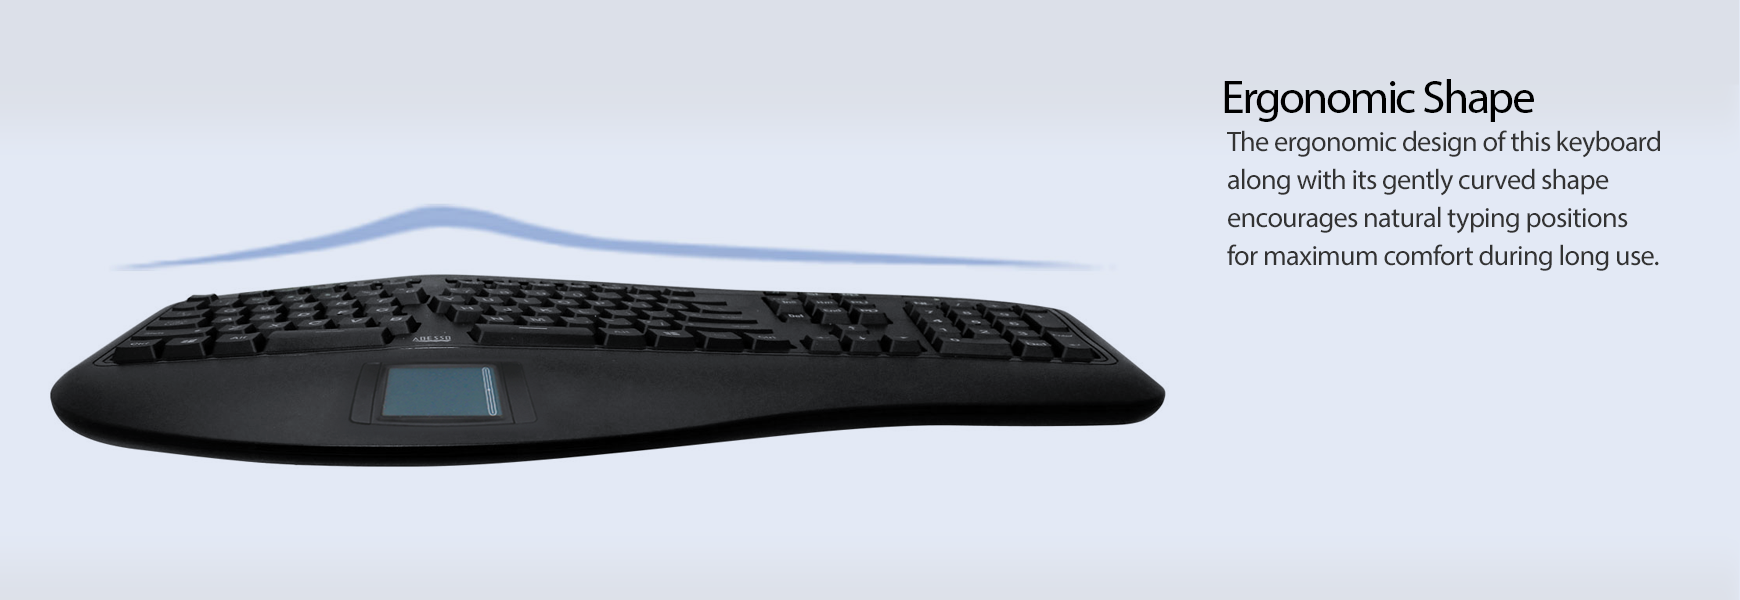 3D Ergonomic Touchpad Keyboard